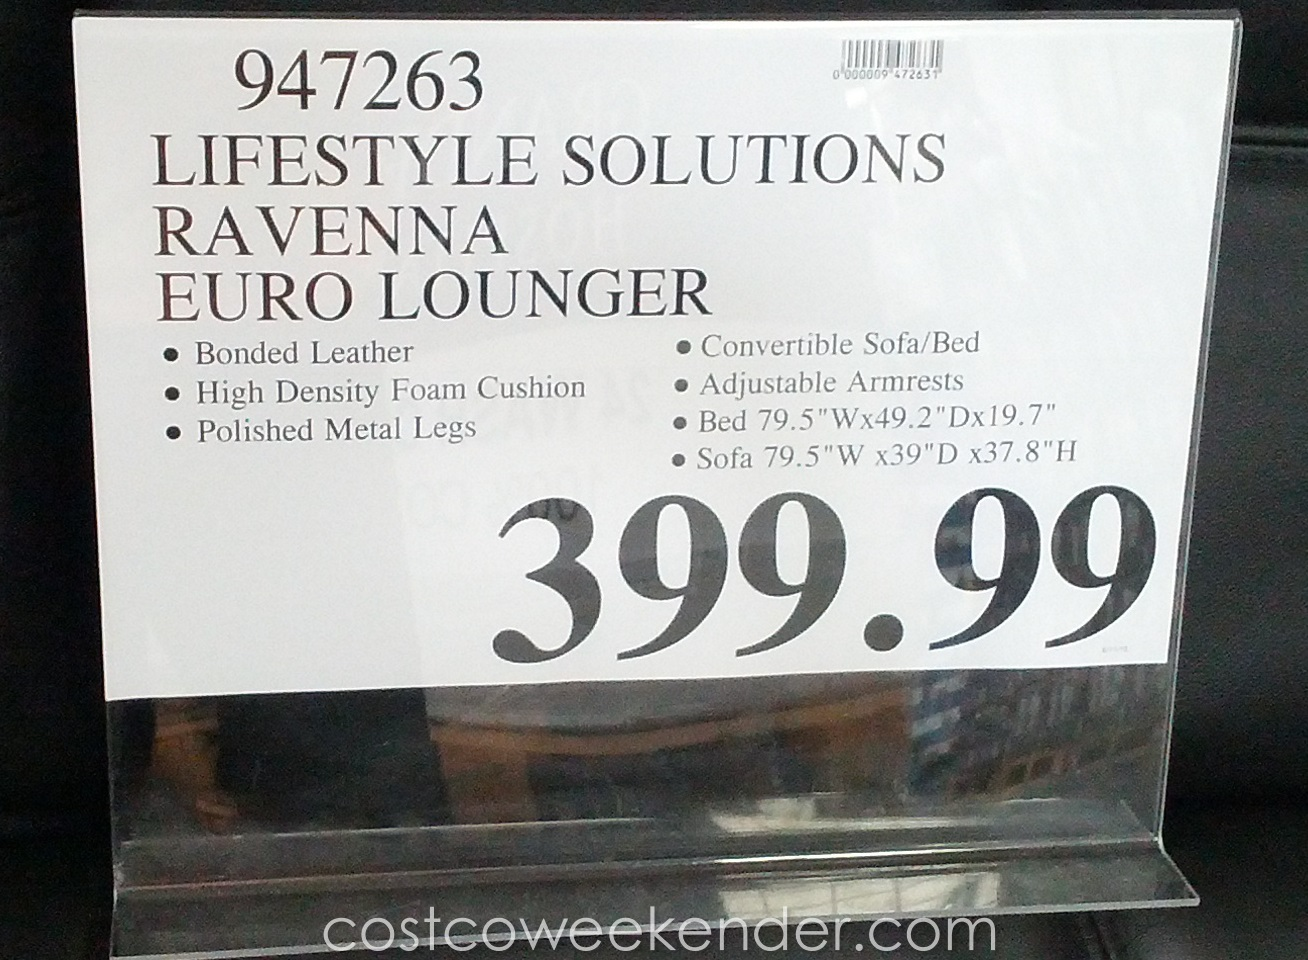 Lifestyle Solutions Ravenna Euro Lounger Costco Weekender